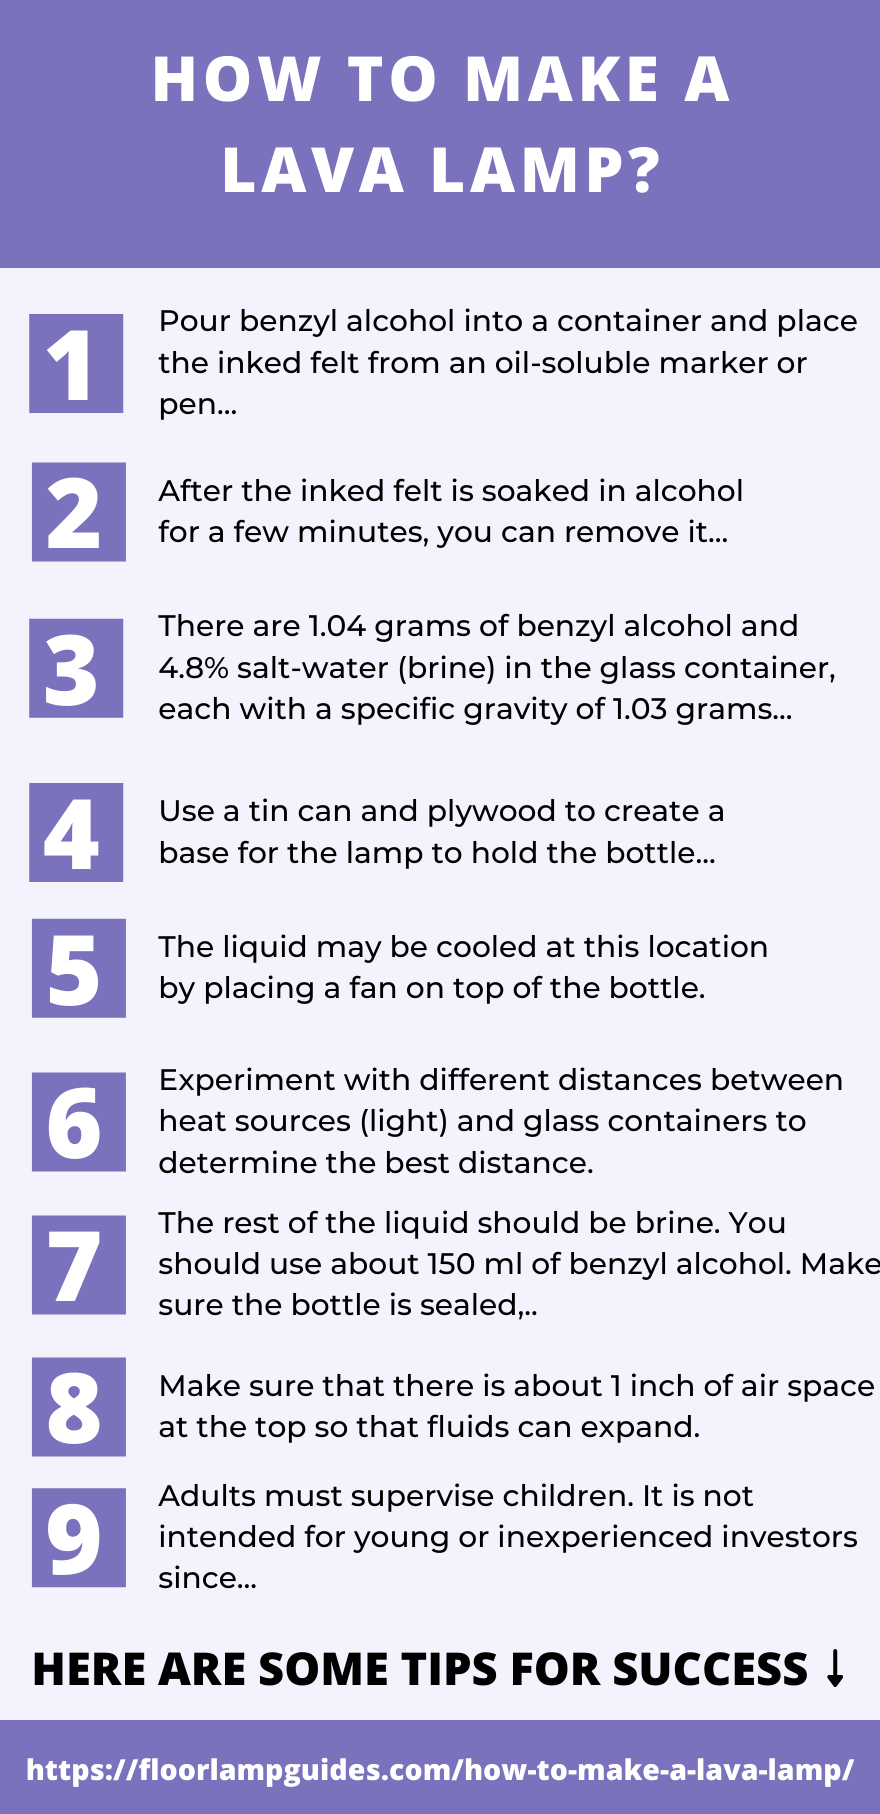 HOW TO MAKE A LAVA LAMP?